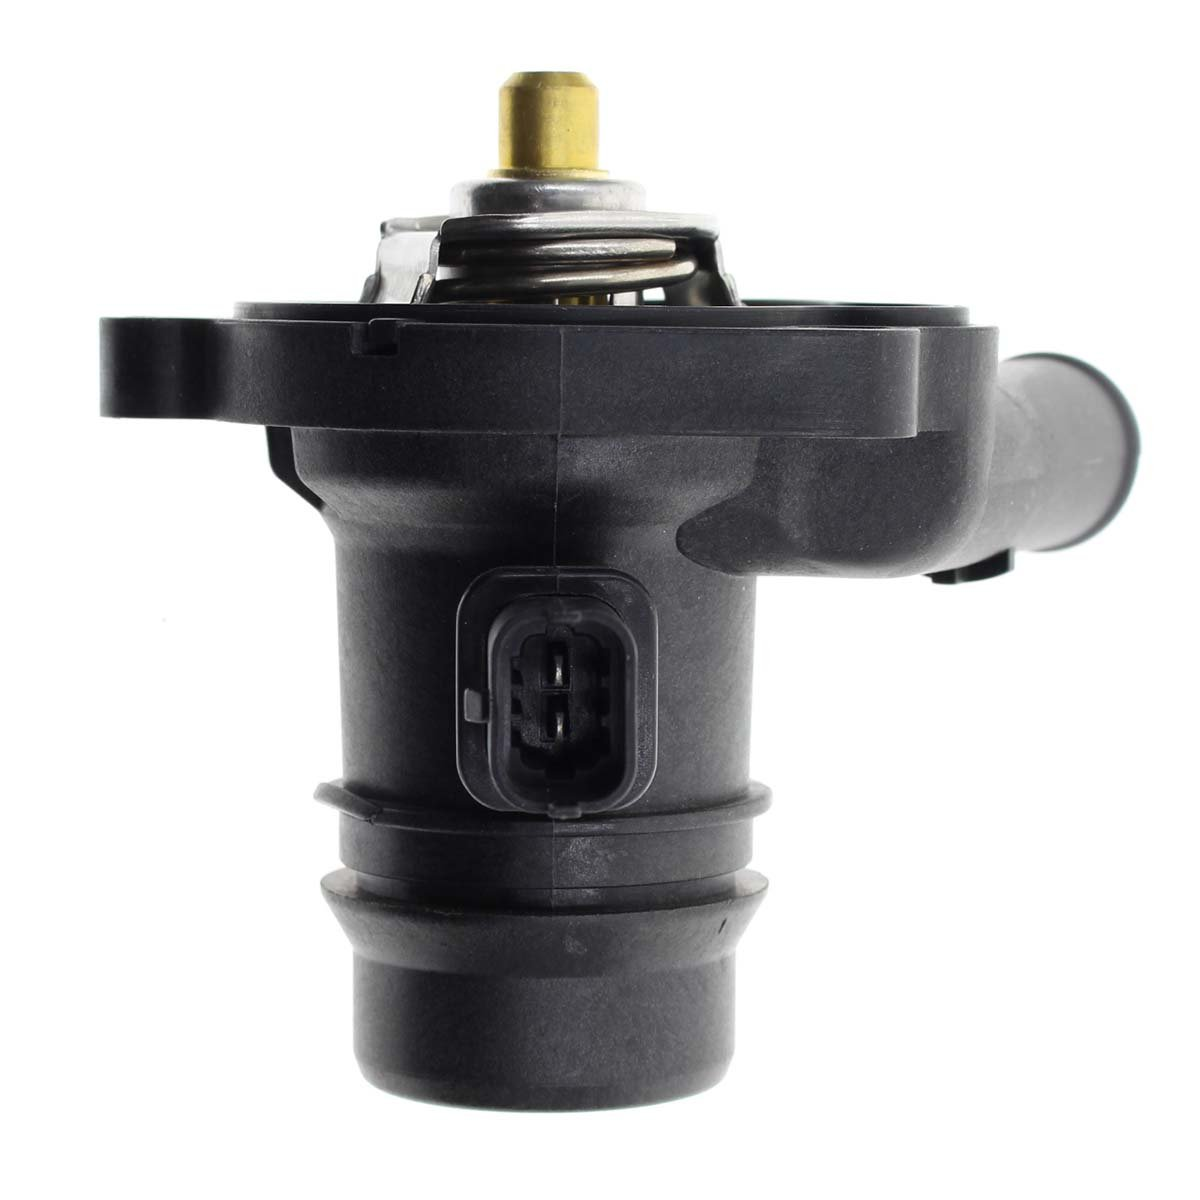 55593034 55579010 AUTOKAY Engine Coolant Thermostat Housing Assembly W//Water Inlet for Sonic Cruze Encore 55565336